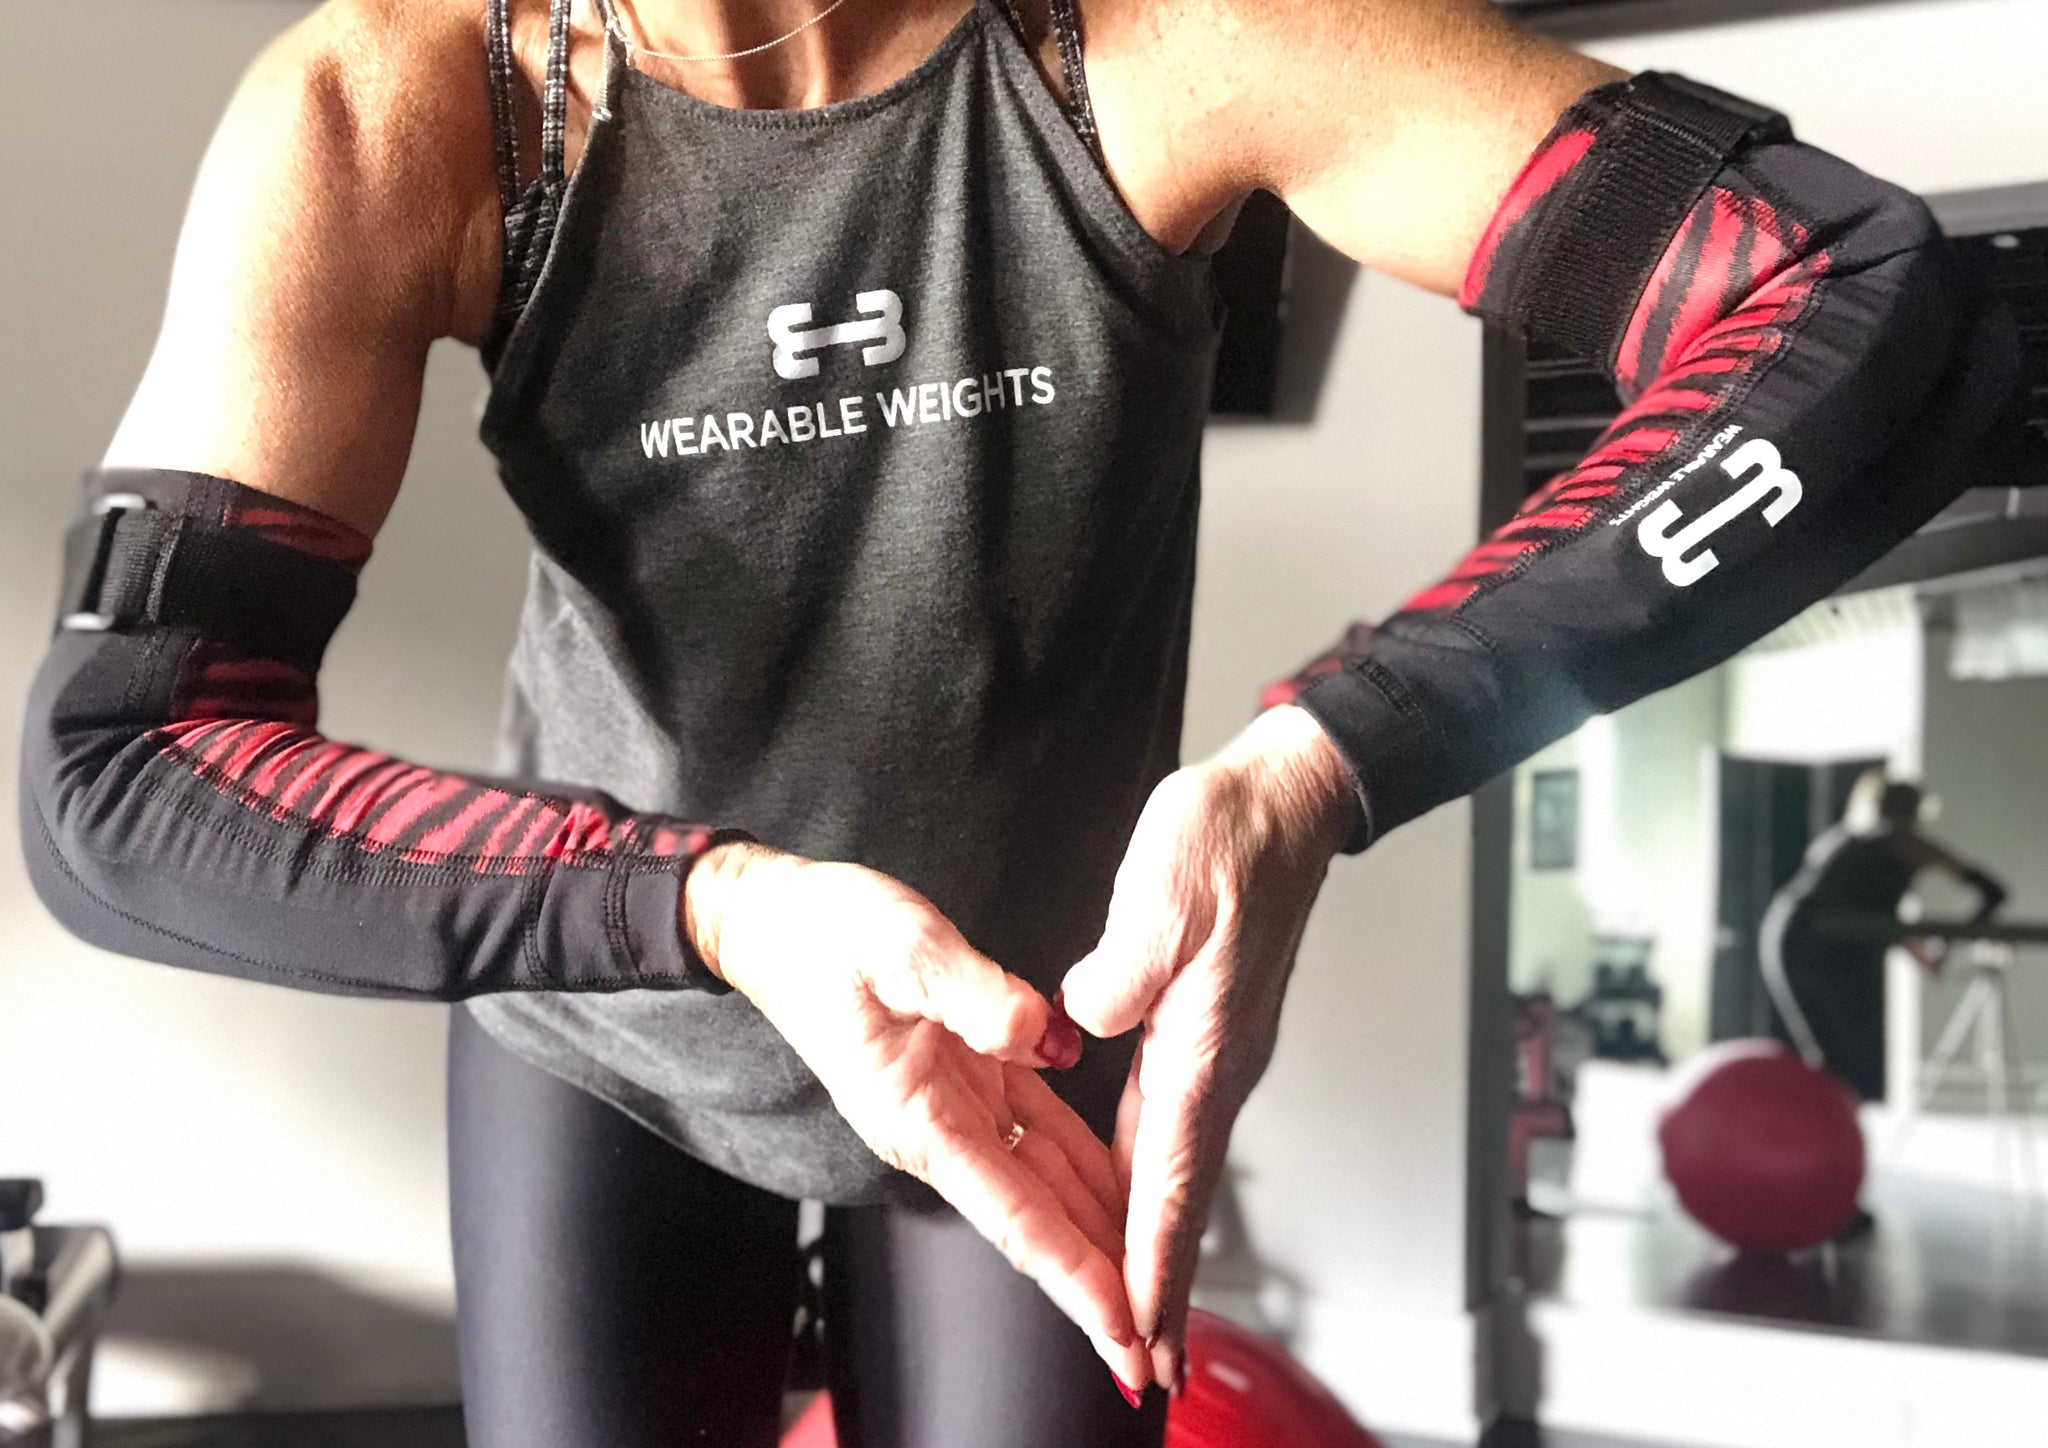 RED ZEBRA COMPRESSION SLEEVE ARMS